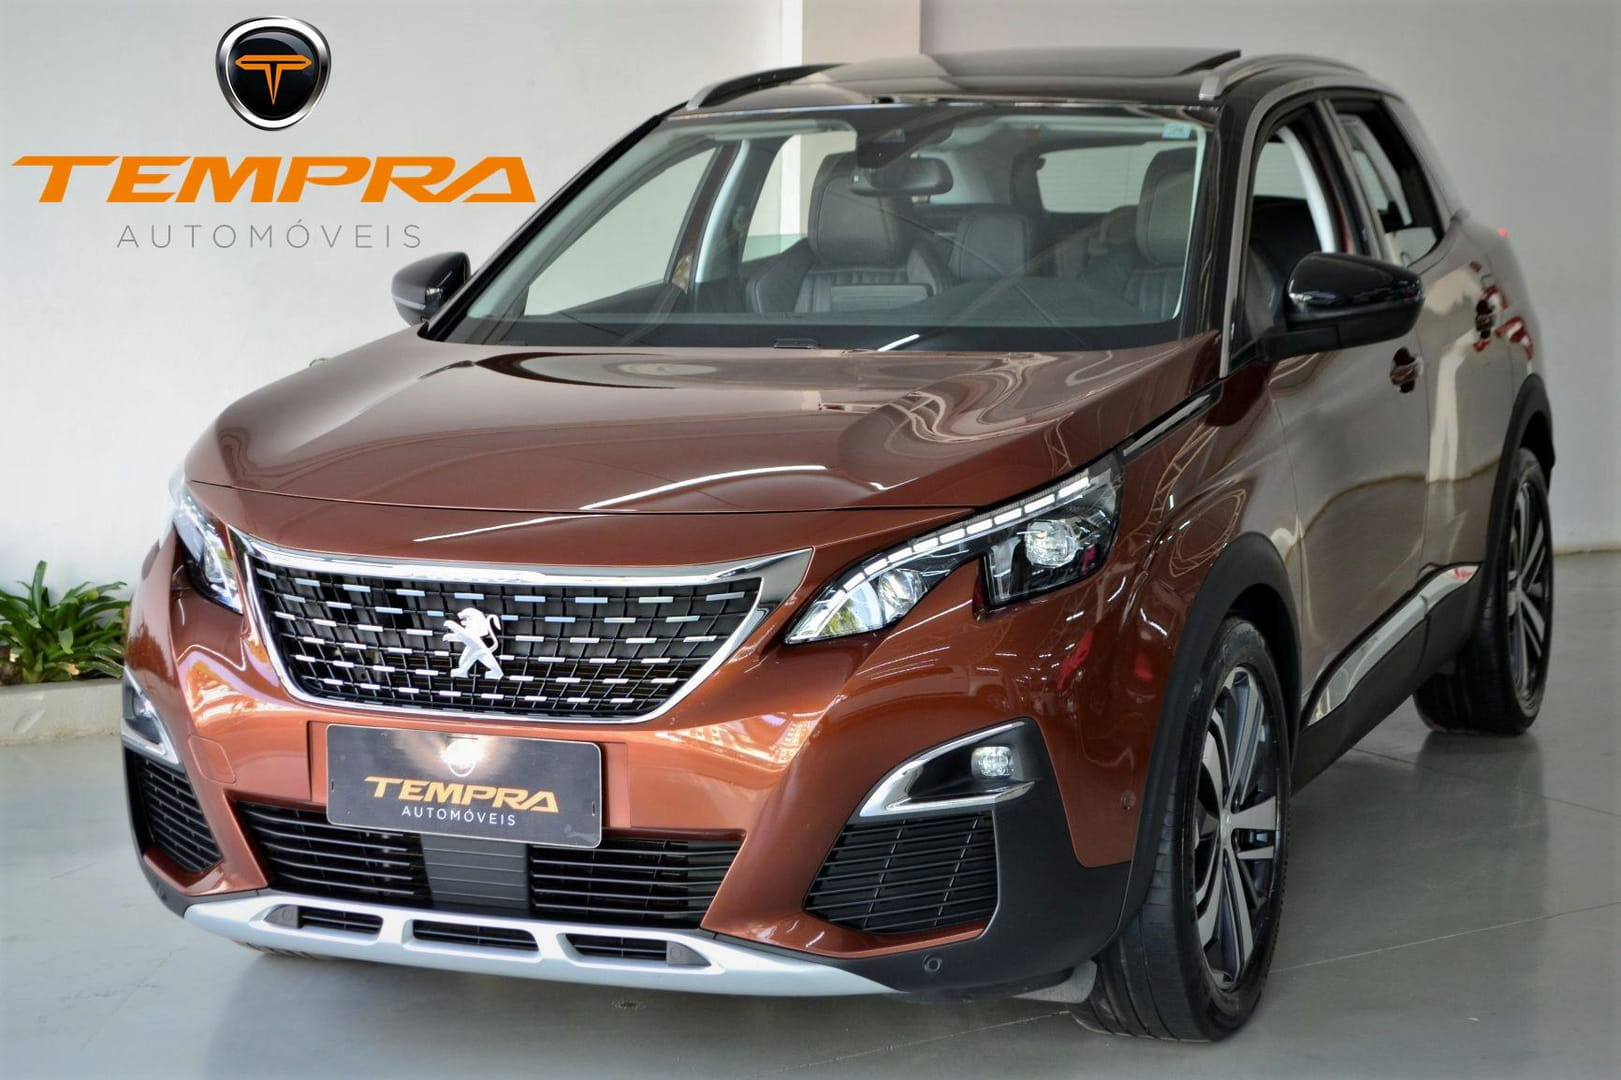 3008 griffe pack 1.6 turbo 16v 2019 passo fundo